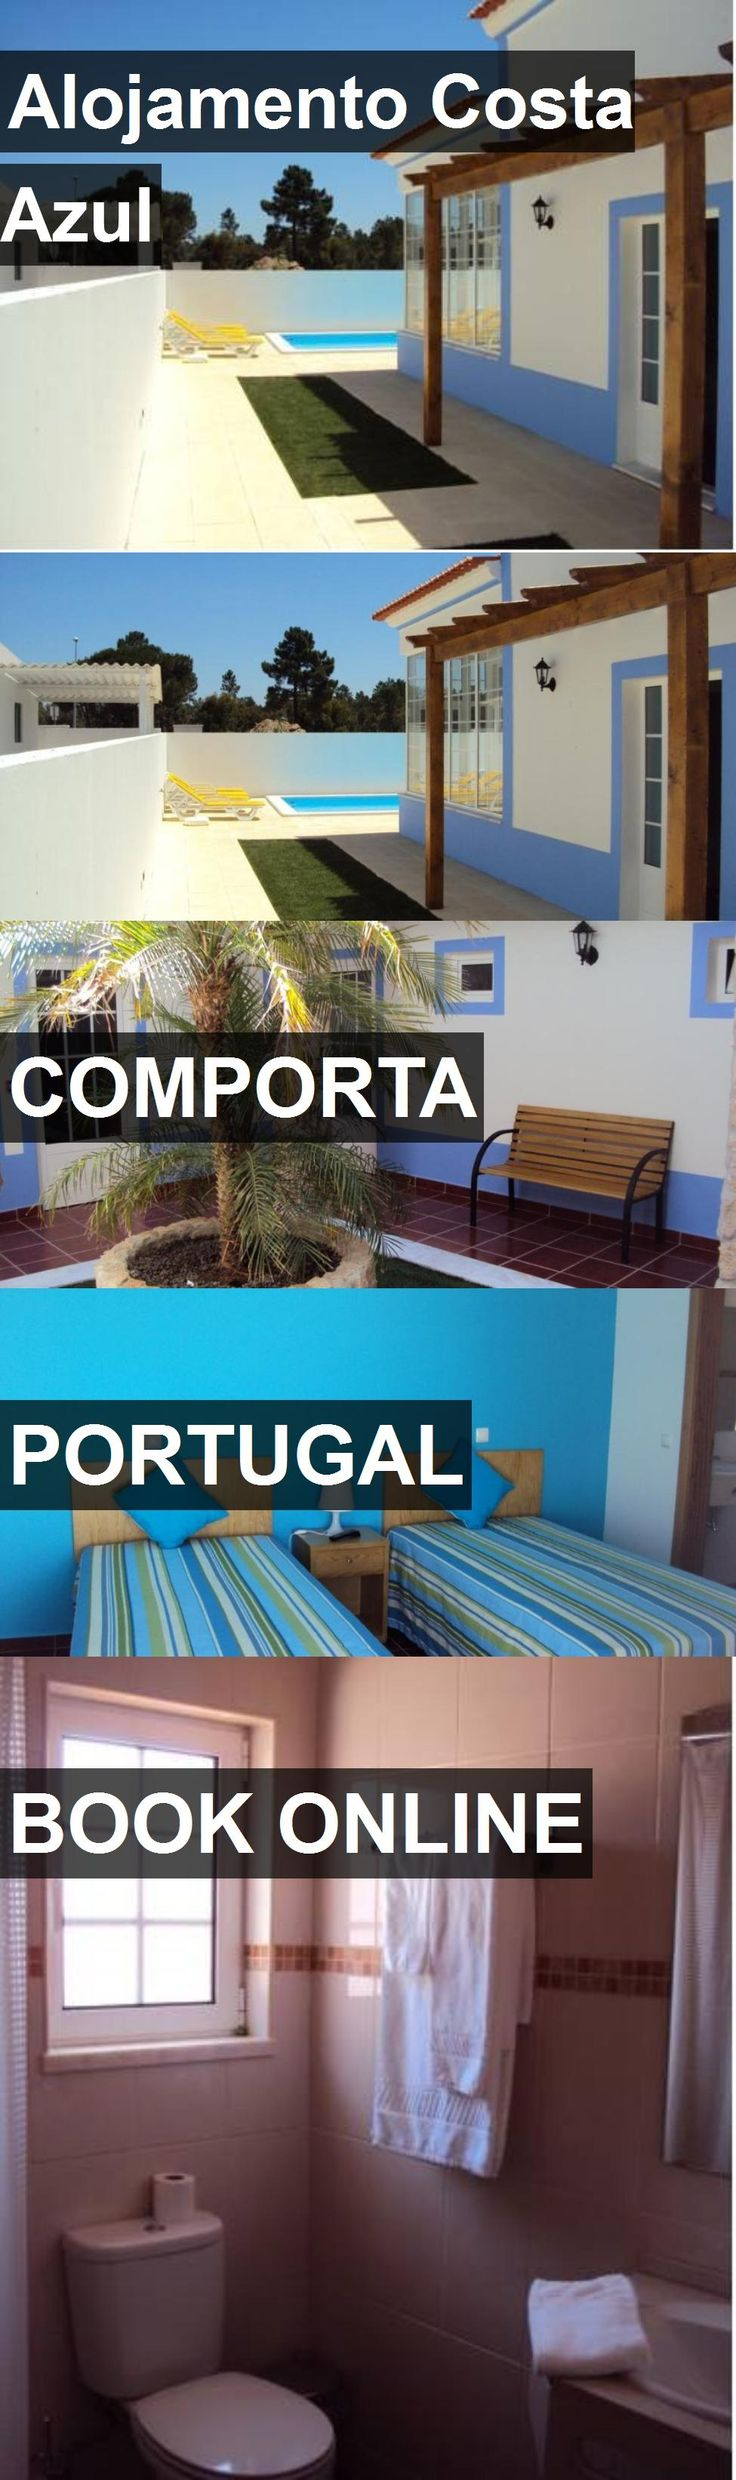 Hotel Alojamento Costa Azul in Comporta, Portugal. For more information, photos, reviews and best prices please follow the link. #Portugal #Comporta #travel #vacation #hotel